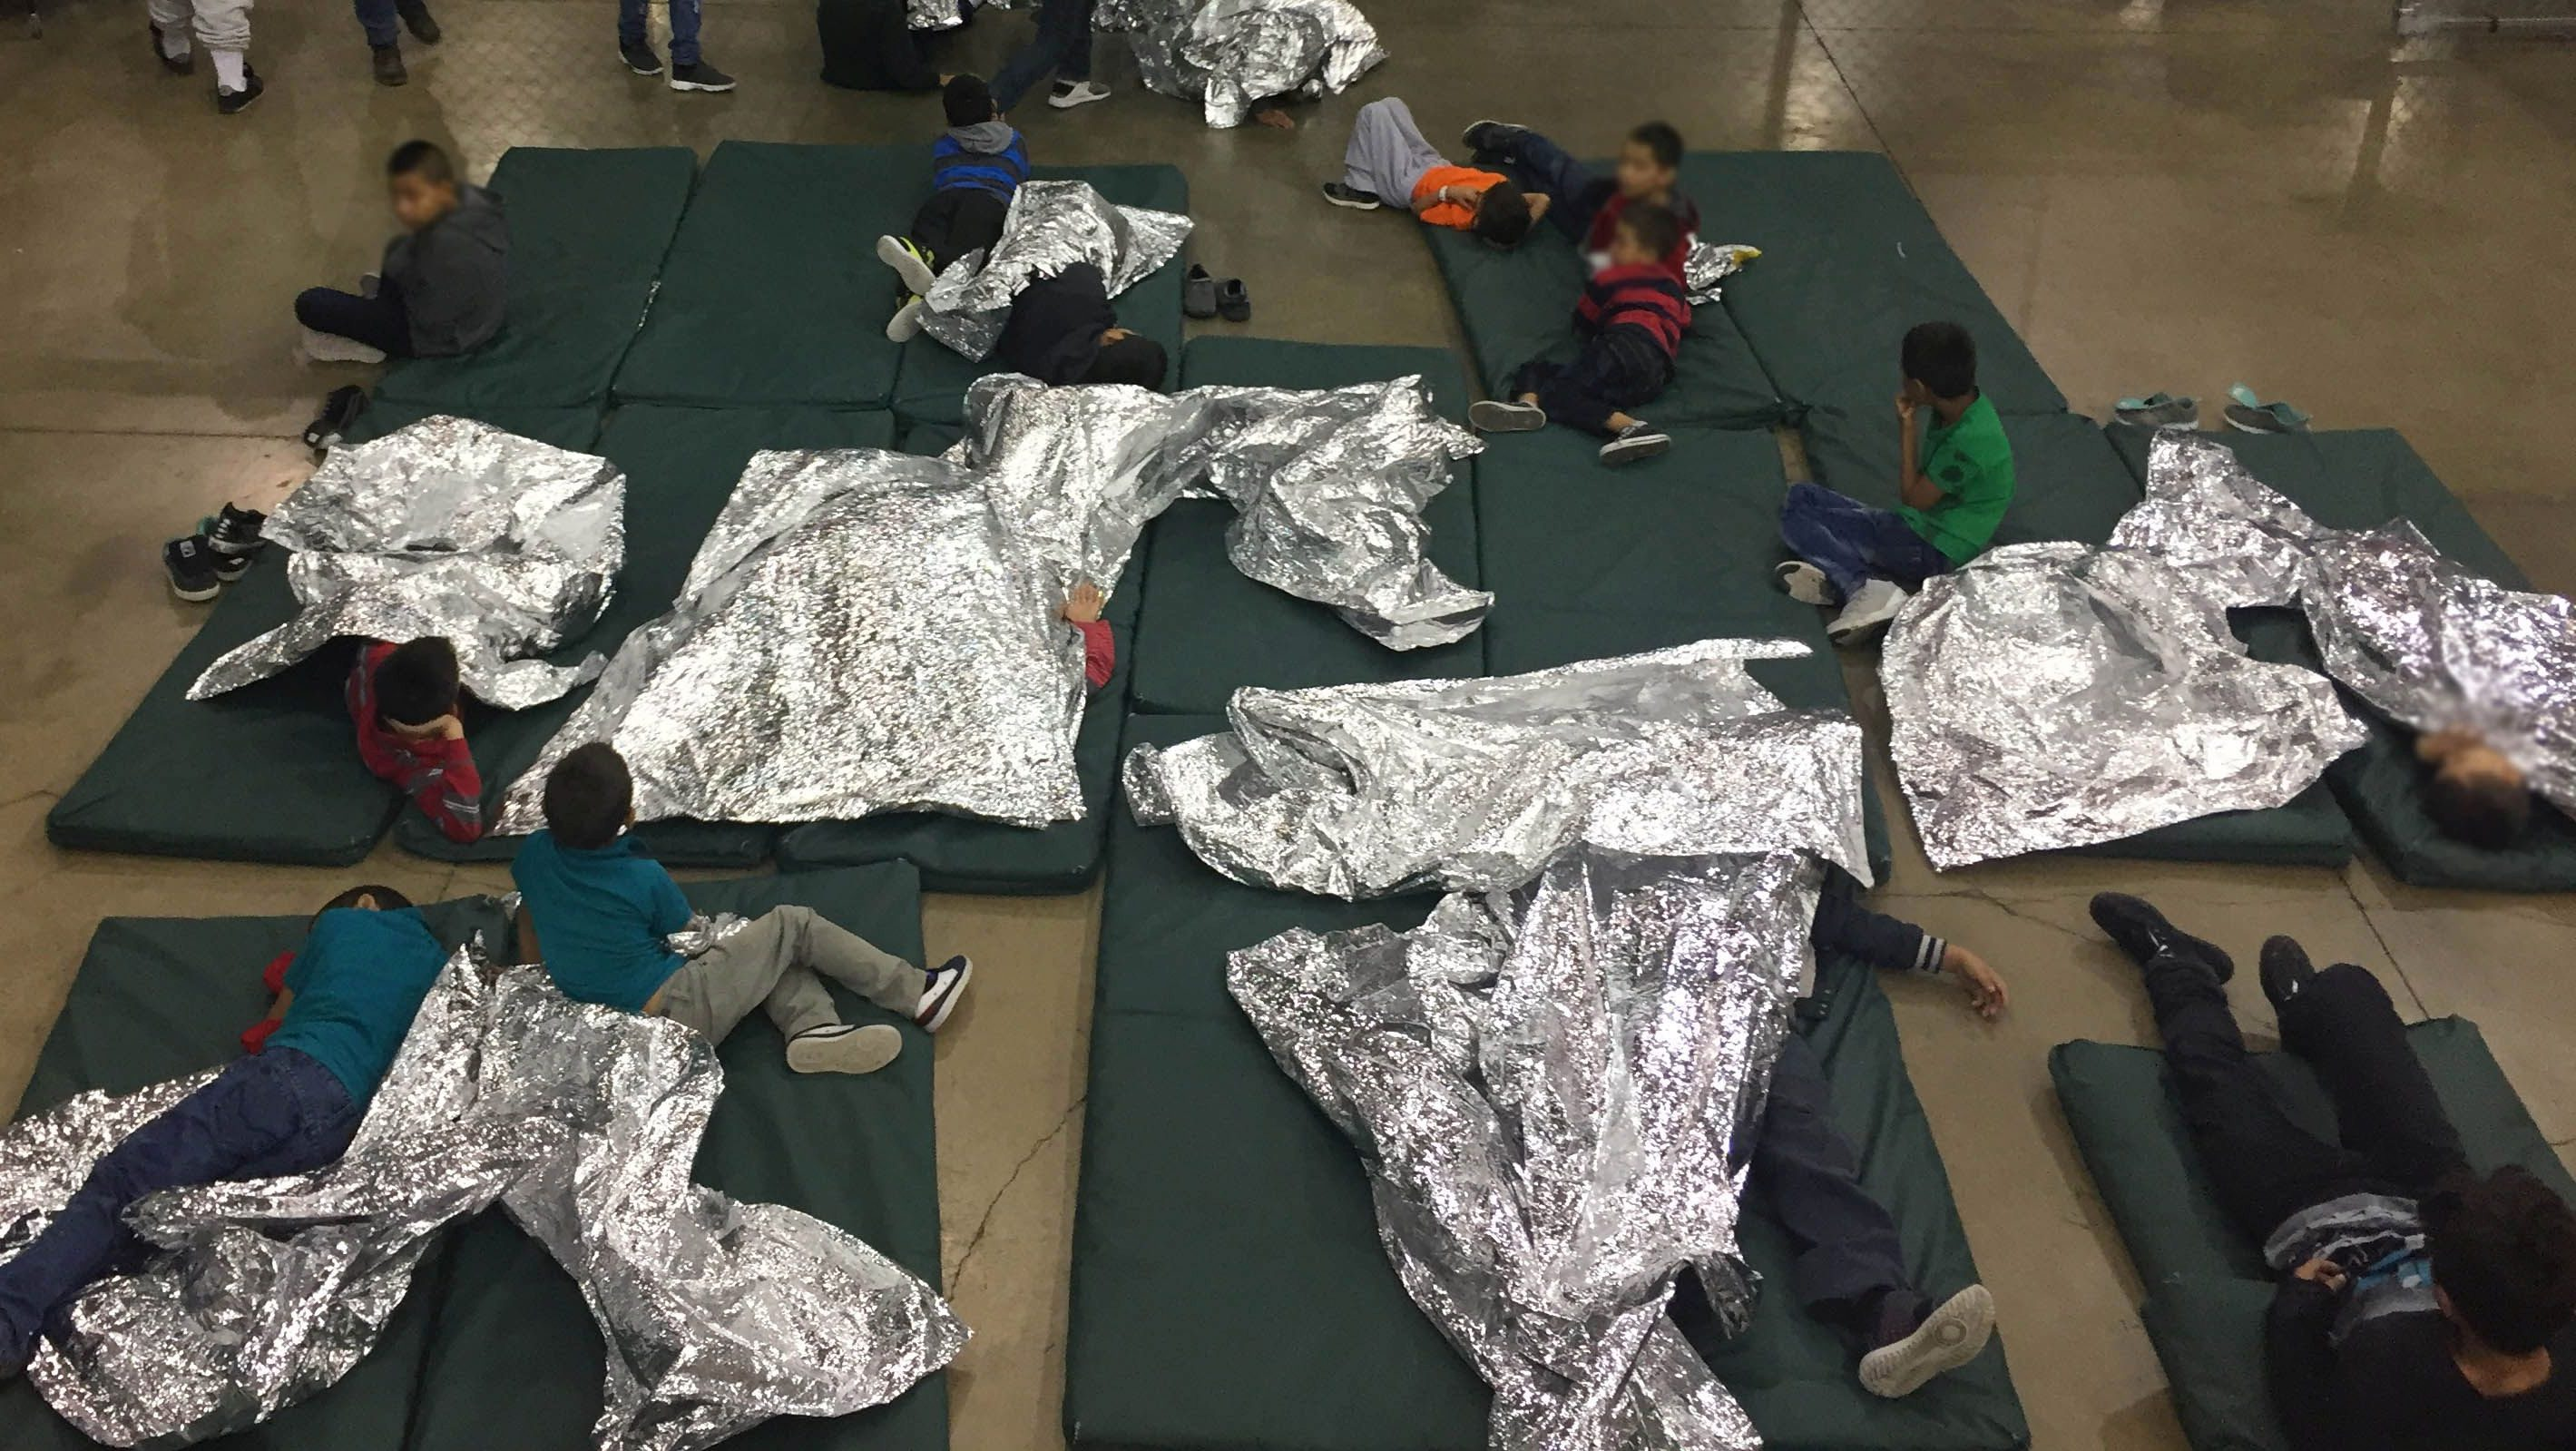 children inside U.S. Customs and Border Protection (CBP) detention facility shows children at Rio Grande Valley Centralized Processing Center